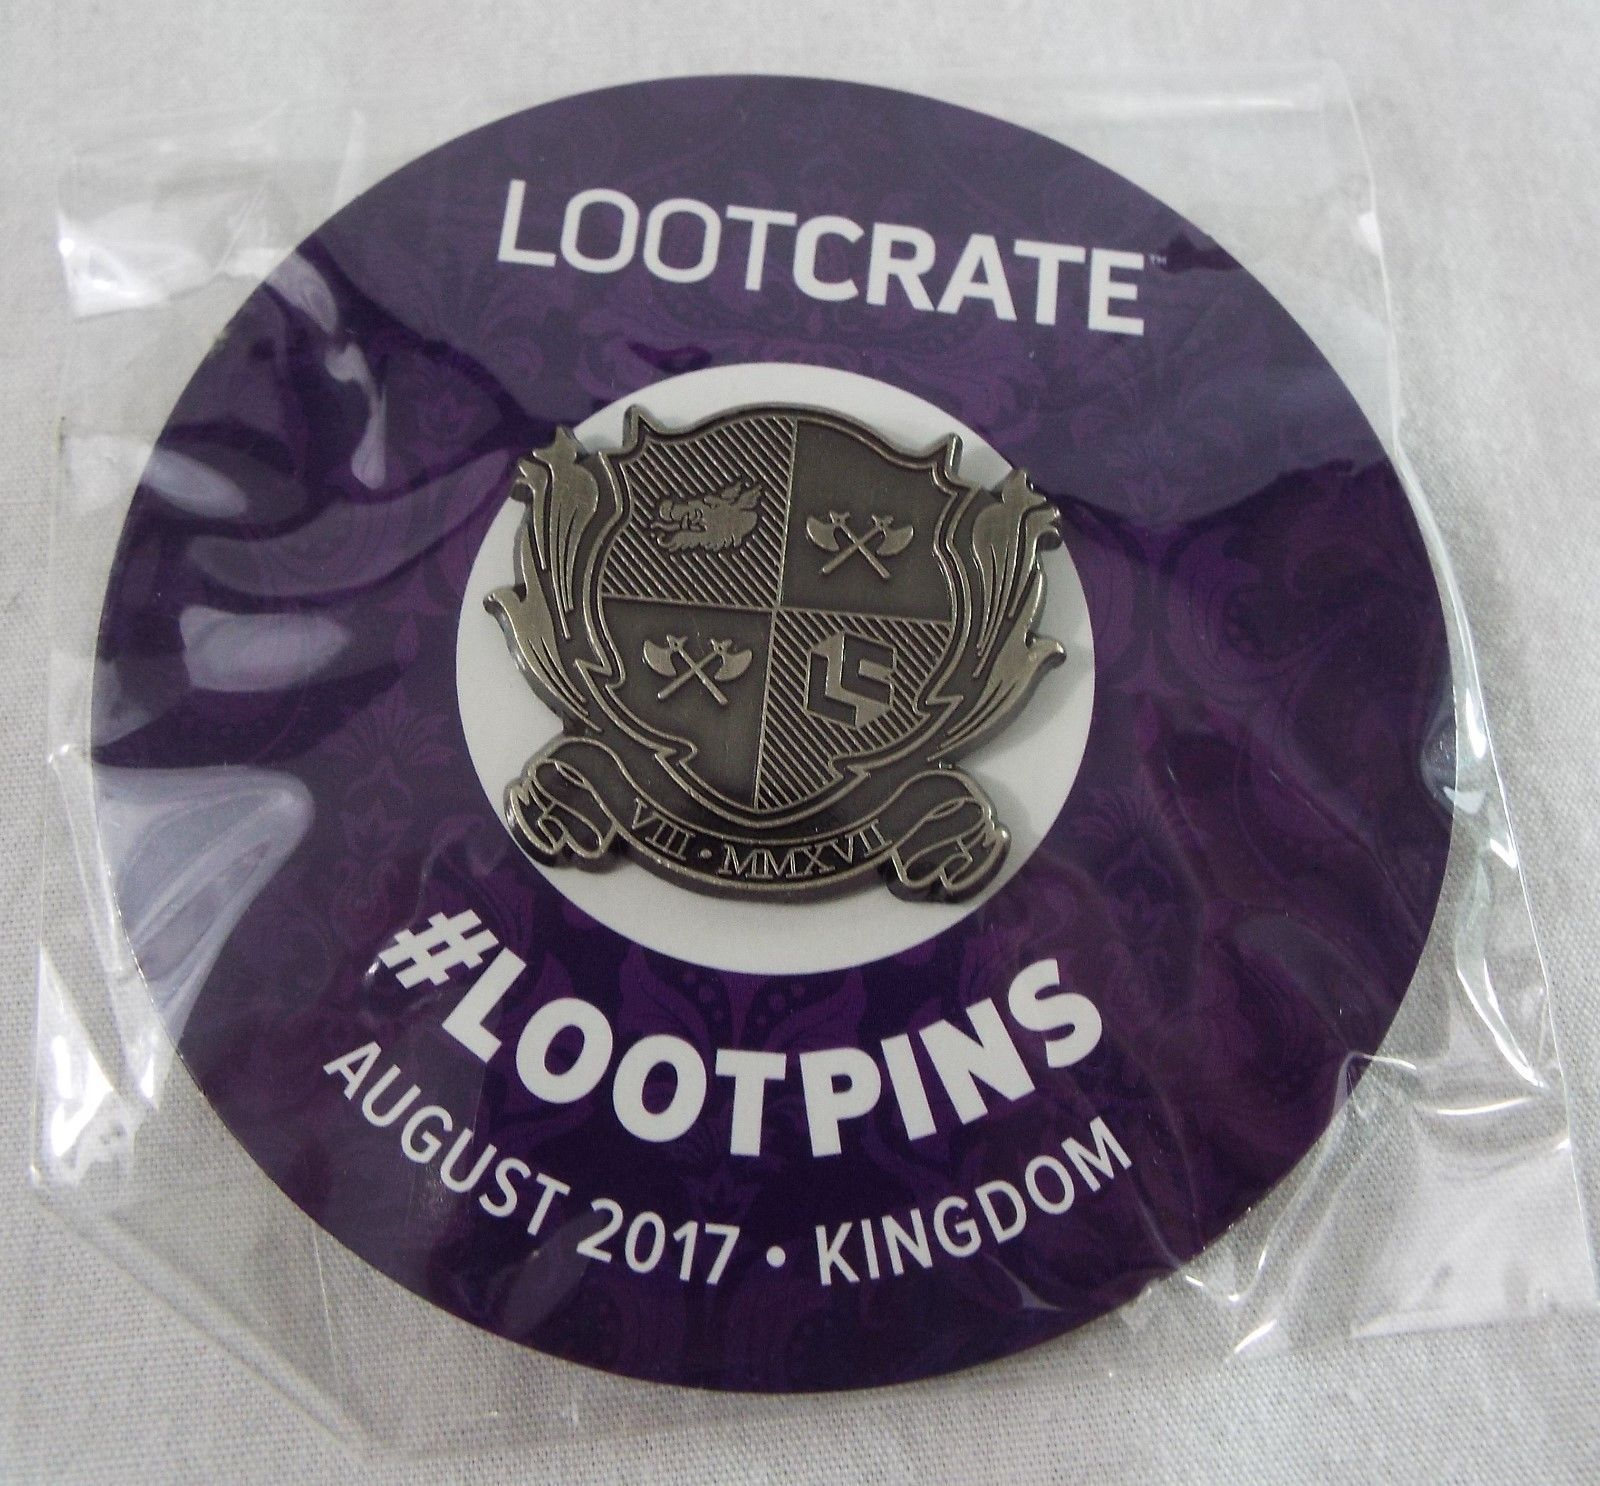 Primary image for Lootcrate Exclusive Lootpins Kindom Crest 1.5 inch NIP August 2017 Kingdom